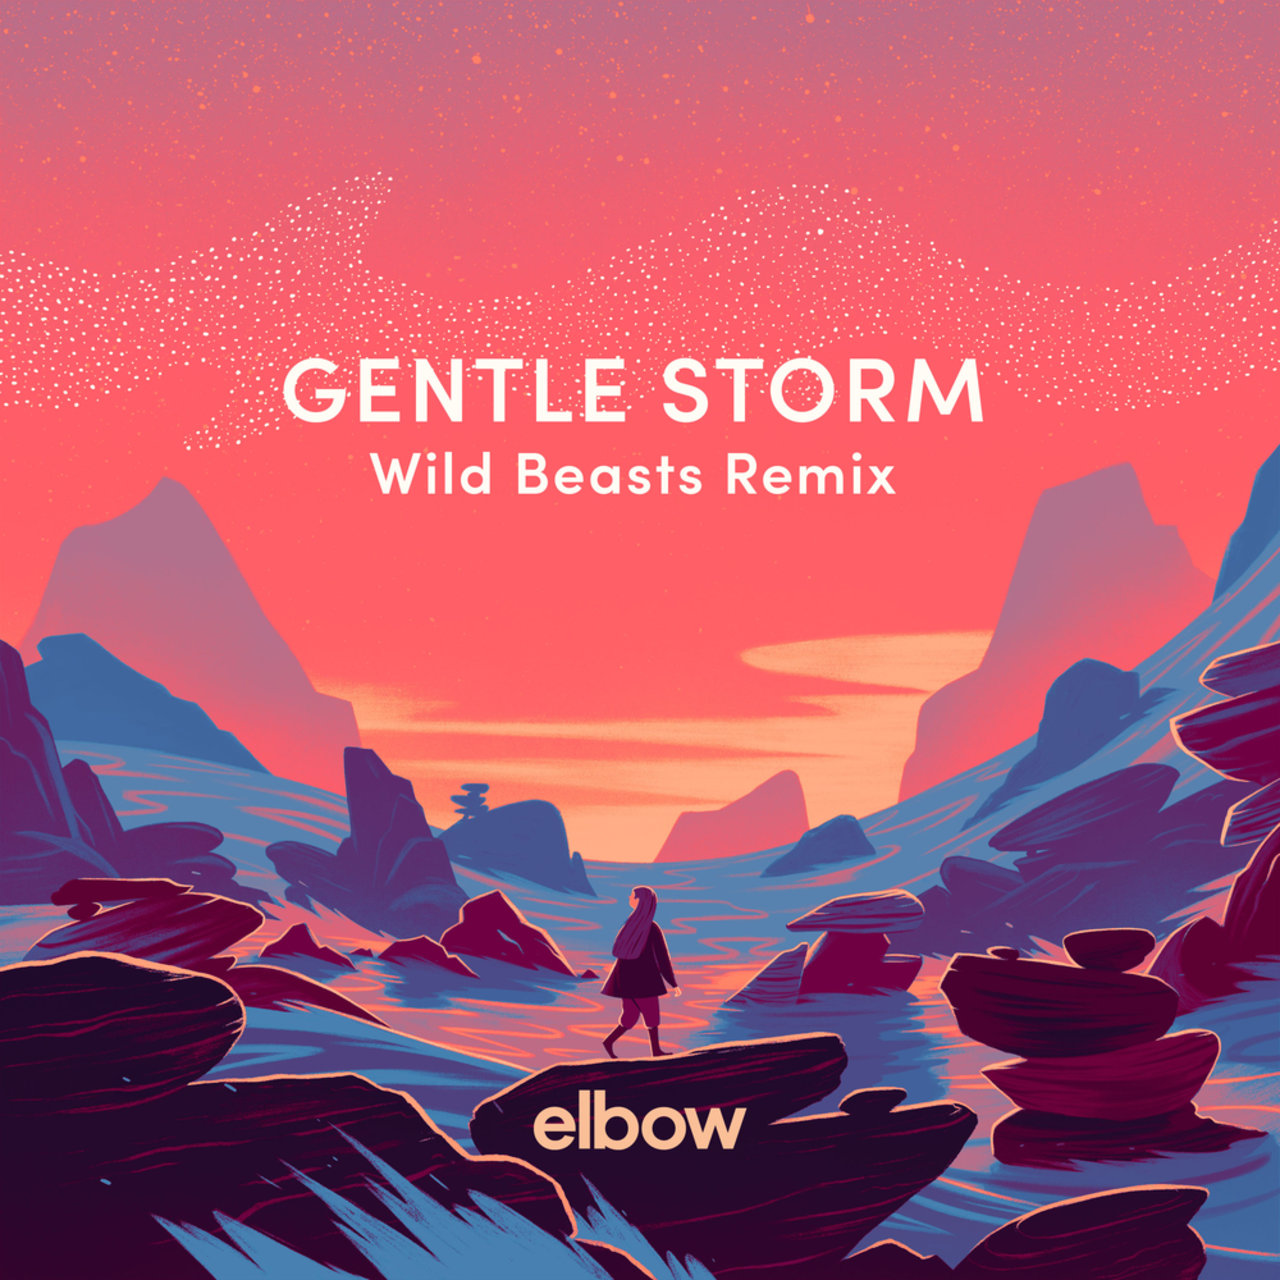 Gentle Storm (Wild Beasts Remix)